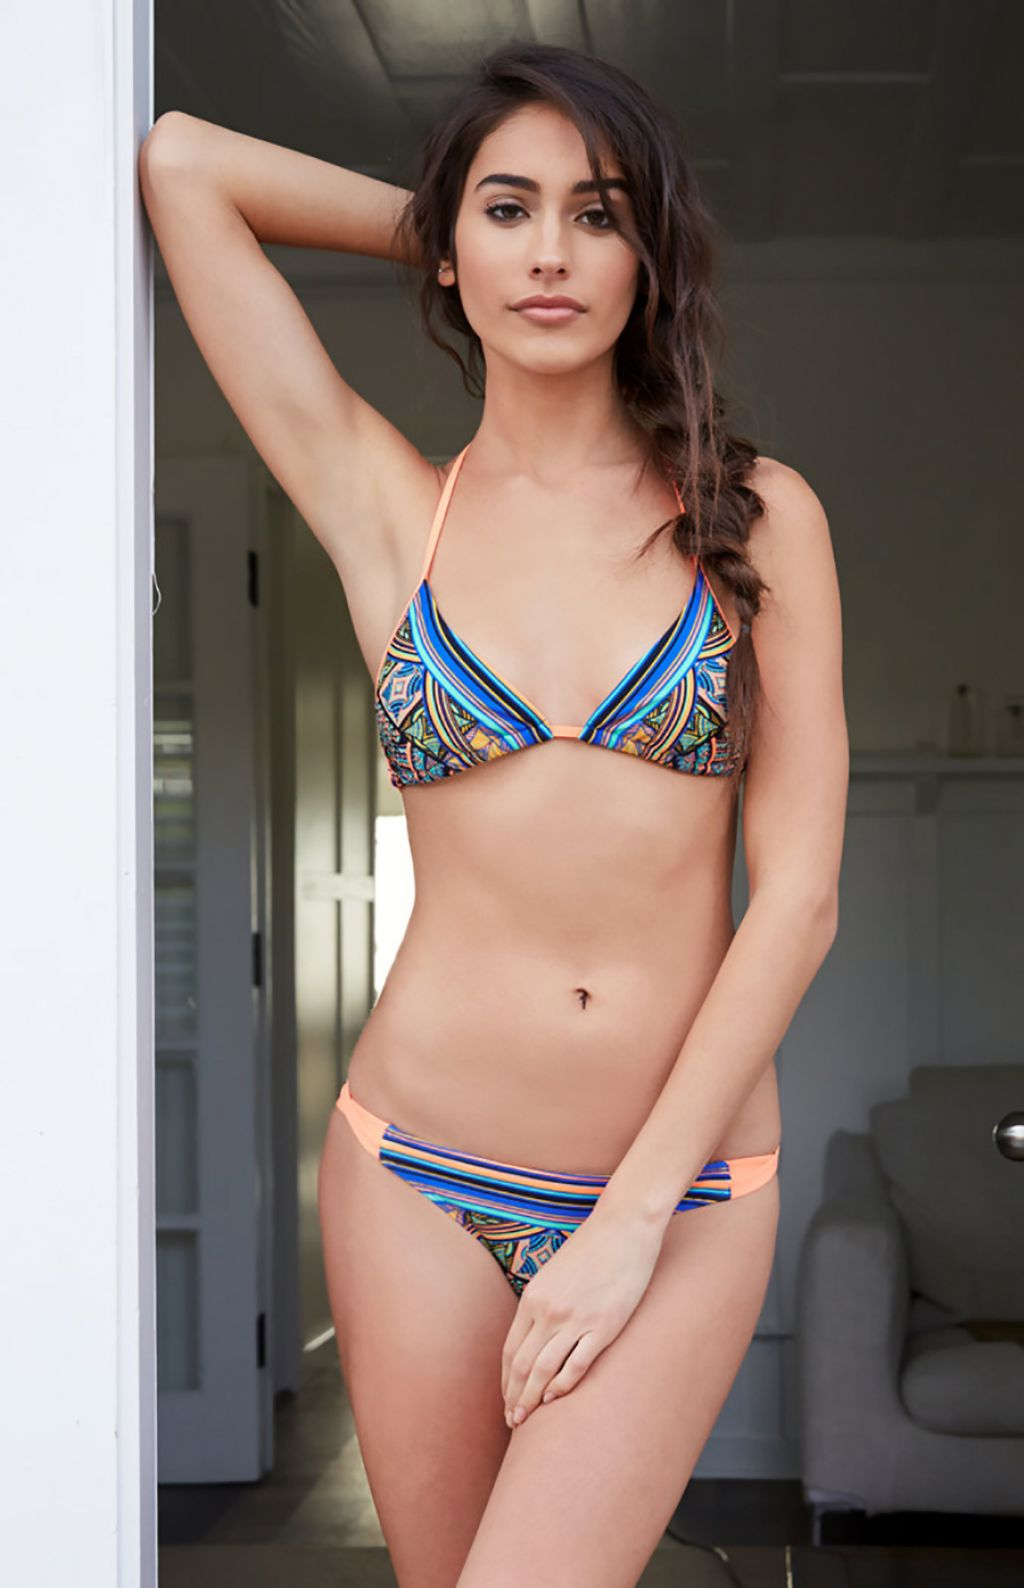 Paparazzi Taylor Hannum naked (79 foto and video), Pussy, Leaked, Feet, bra 2018